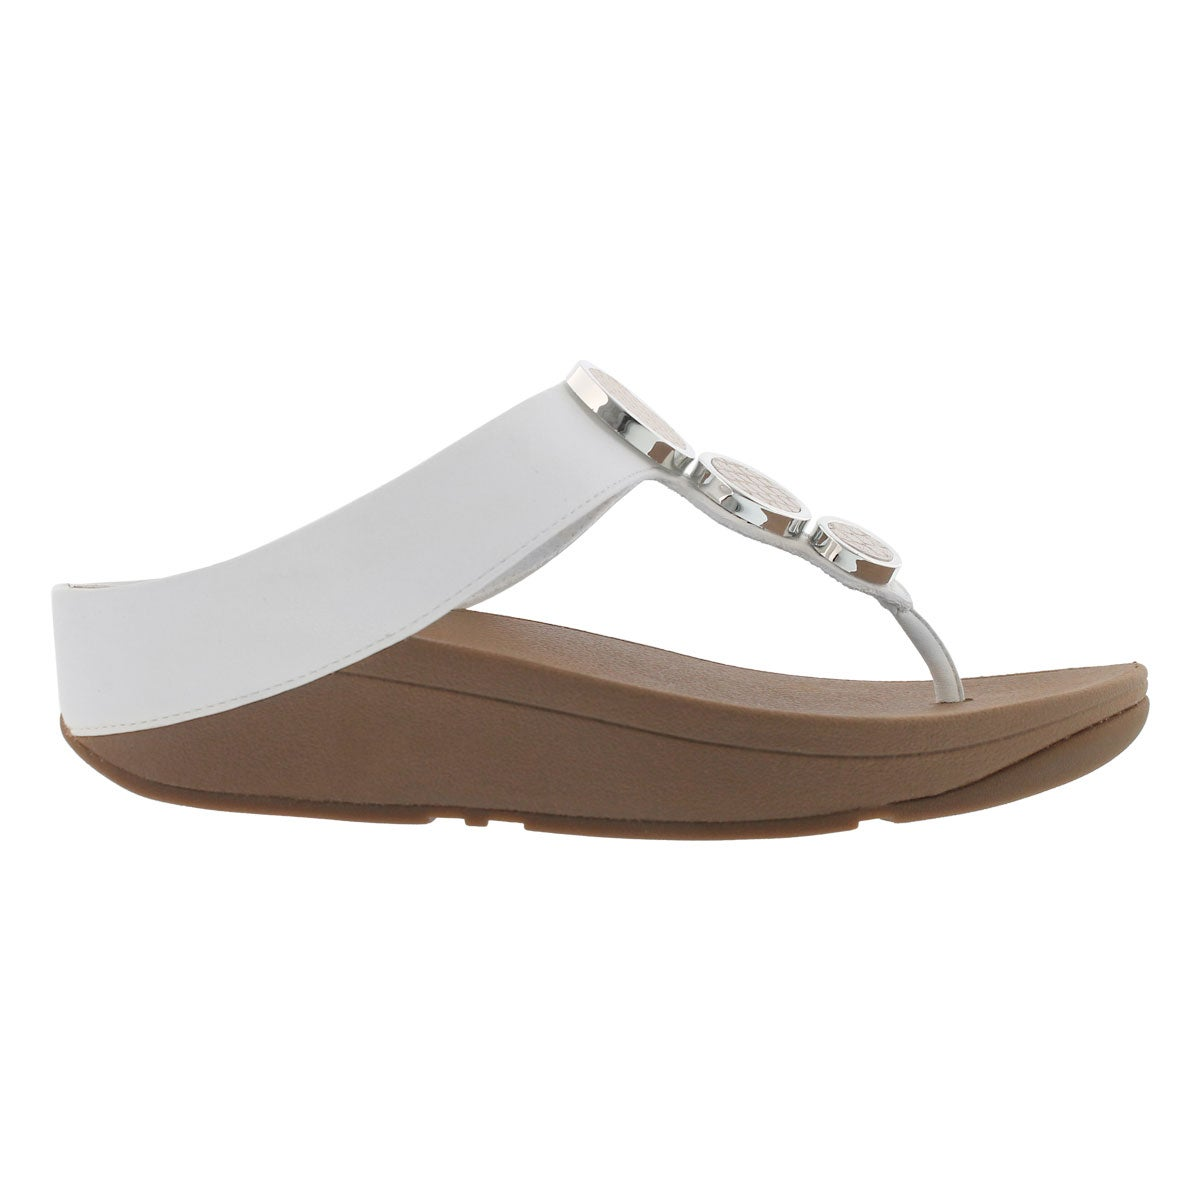 Lds Halo Toe urban white thng sndl